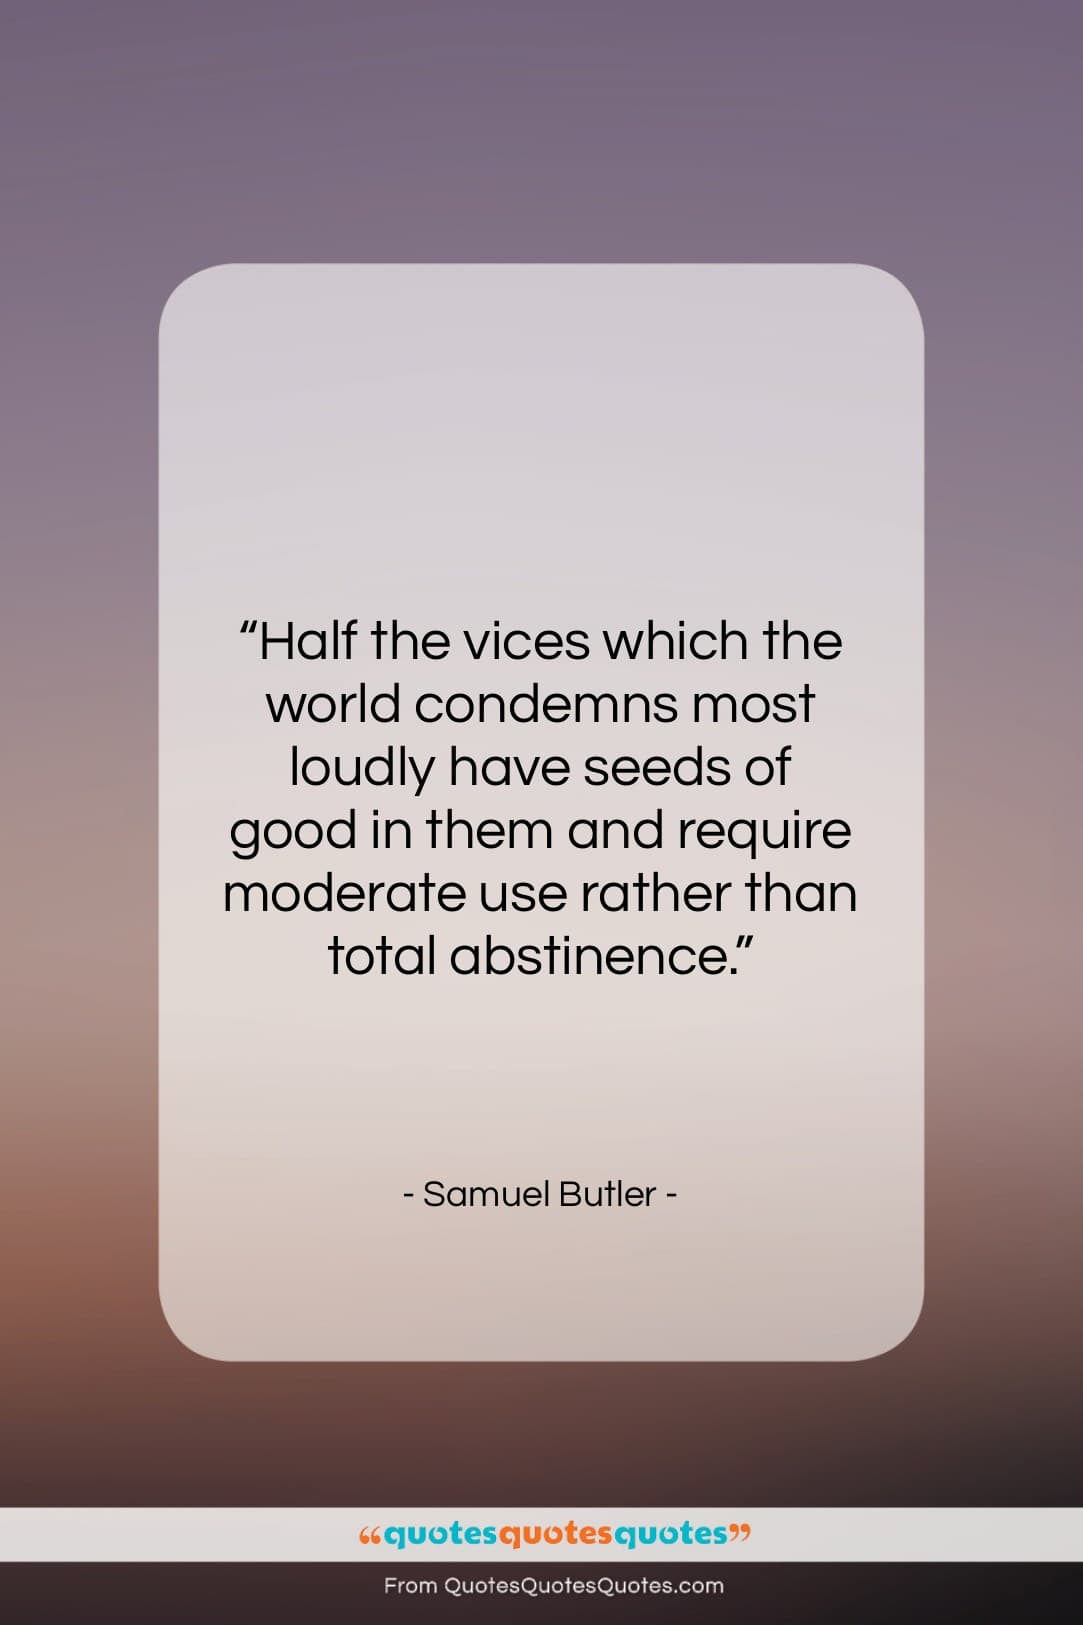 """Samuel Butler quote: """"Half the vices which the world condemns…""""- at QuotesQuotesQuotes.com"""